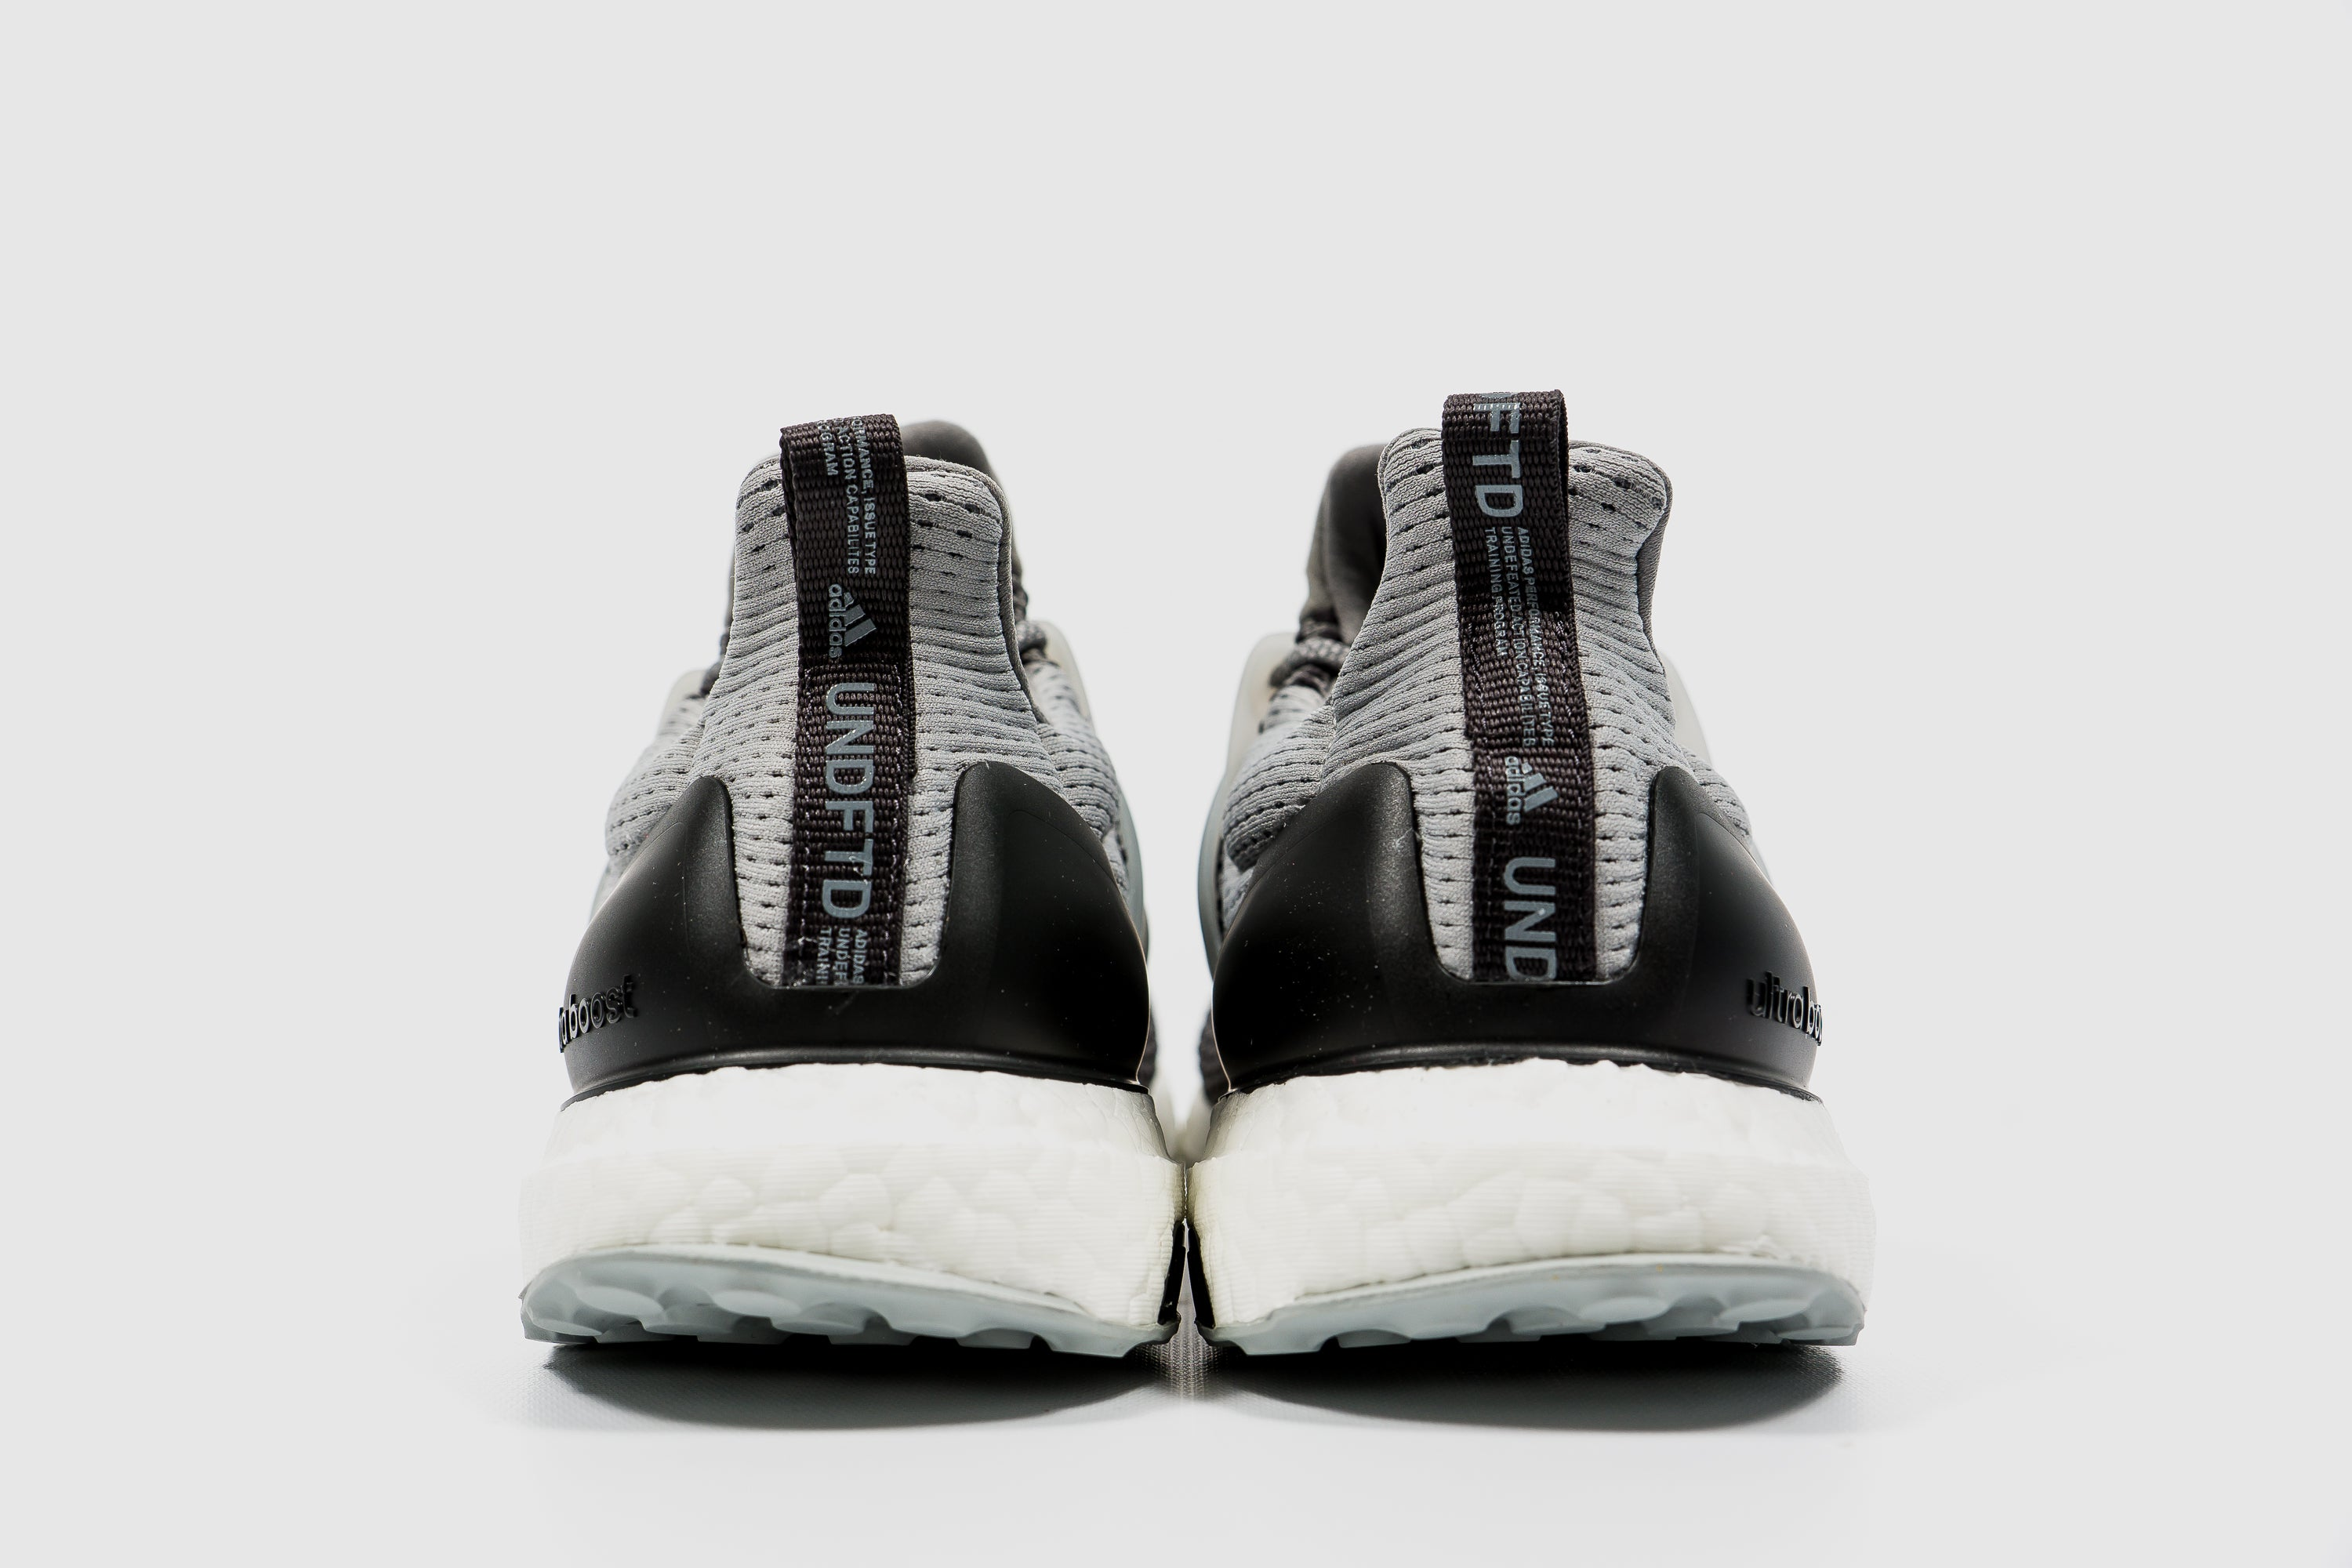 aa99faebe3051 ADIDAS ULTRA BOOST X UNDEFEATED – PACKER SHOES